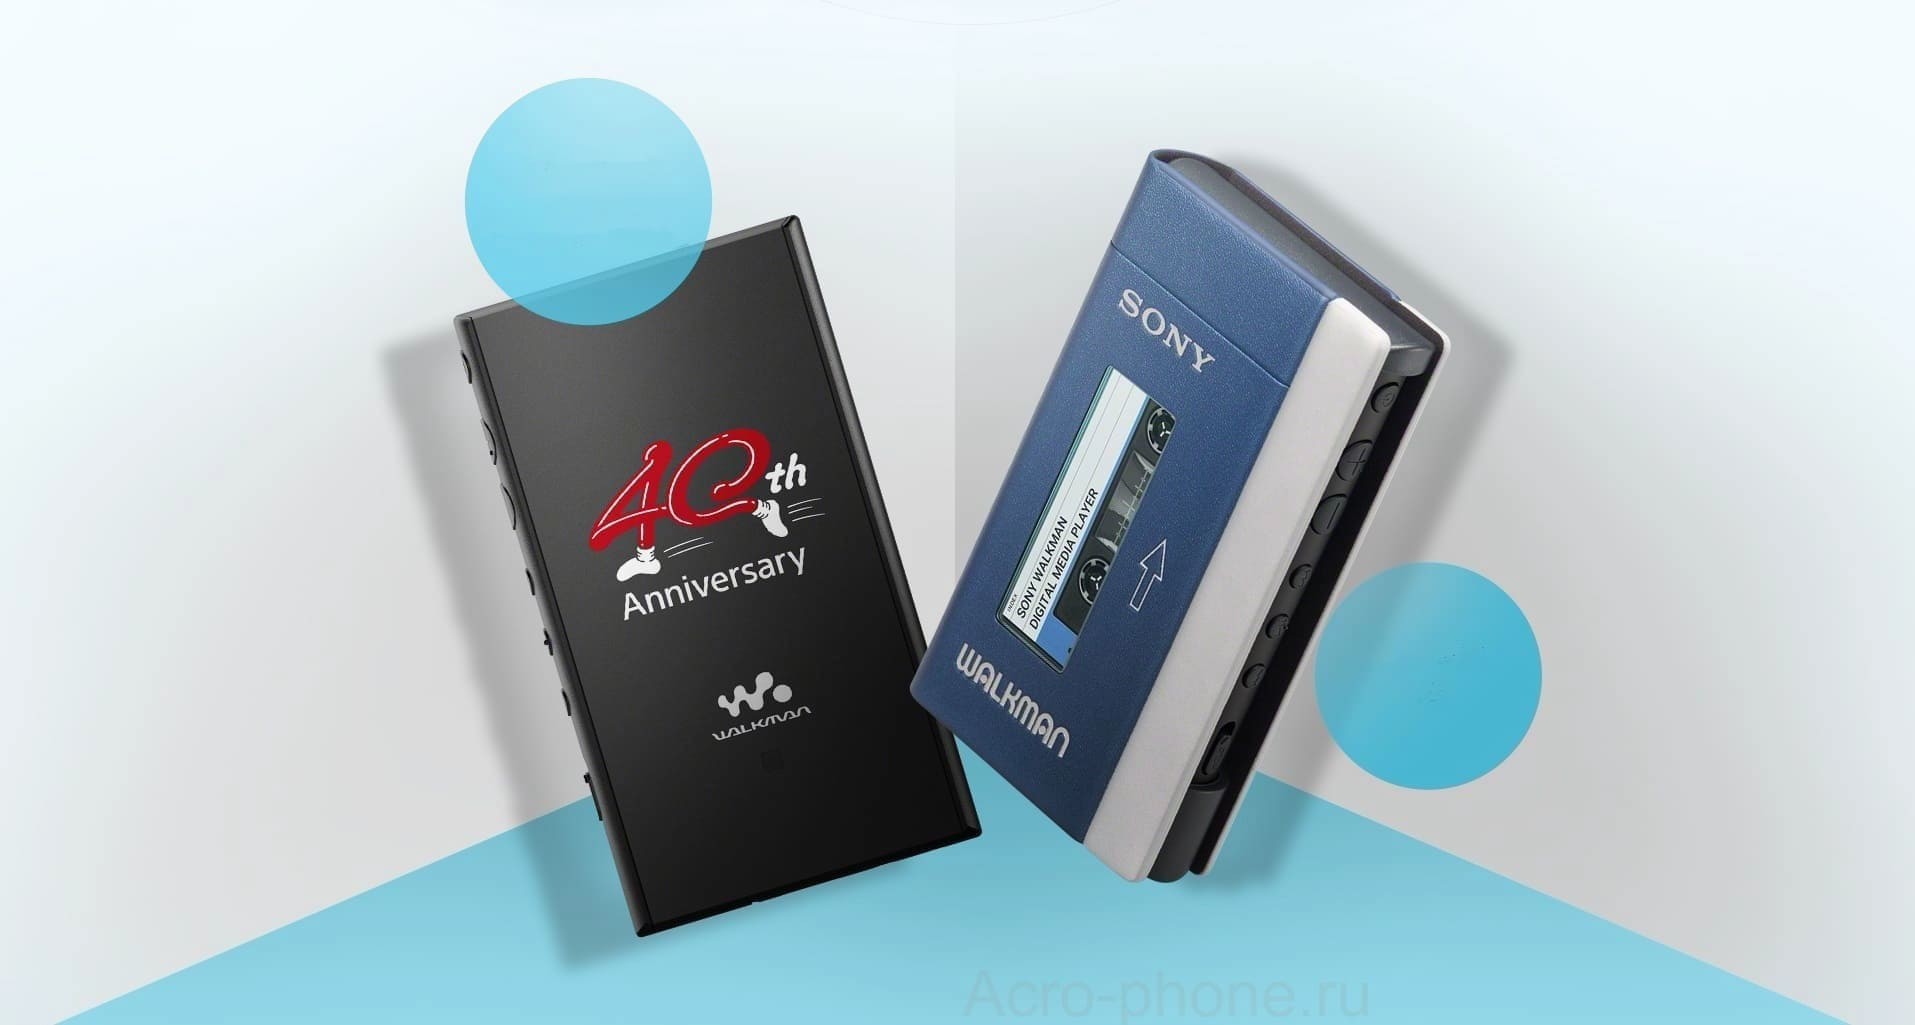 Sony выпустила в России Android-плеер Sony Walkman NW-A100TPS 40th Anniversary Limited